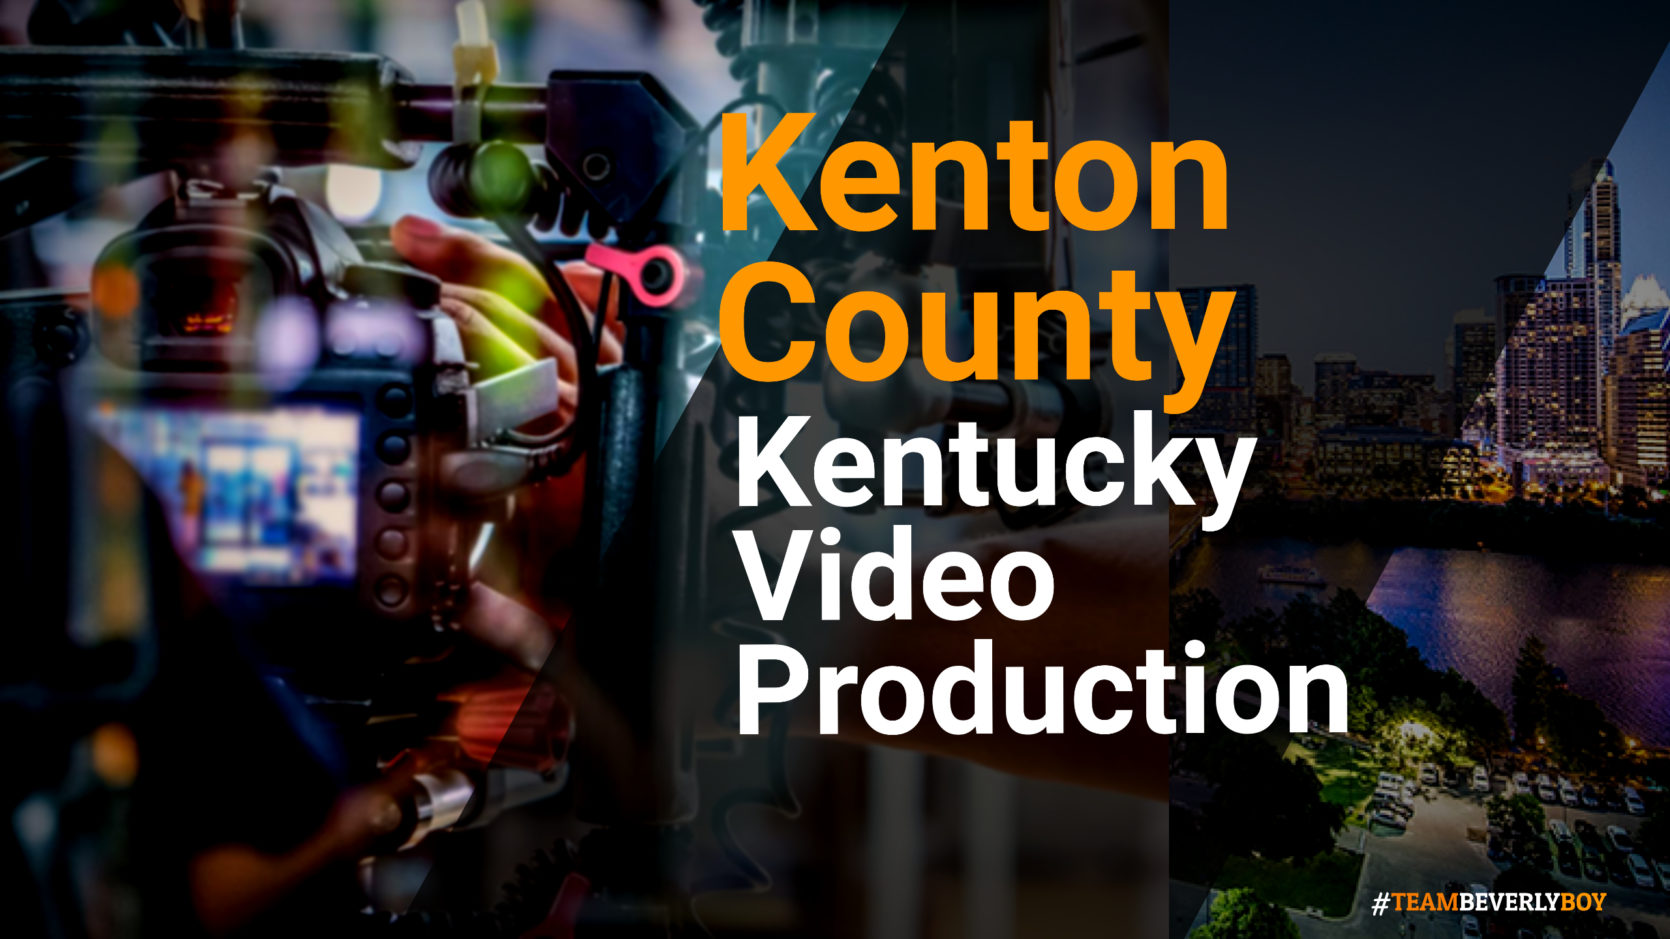 Kenton county video production